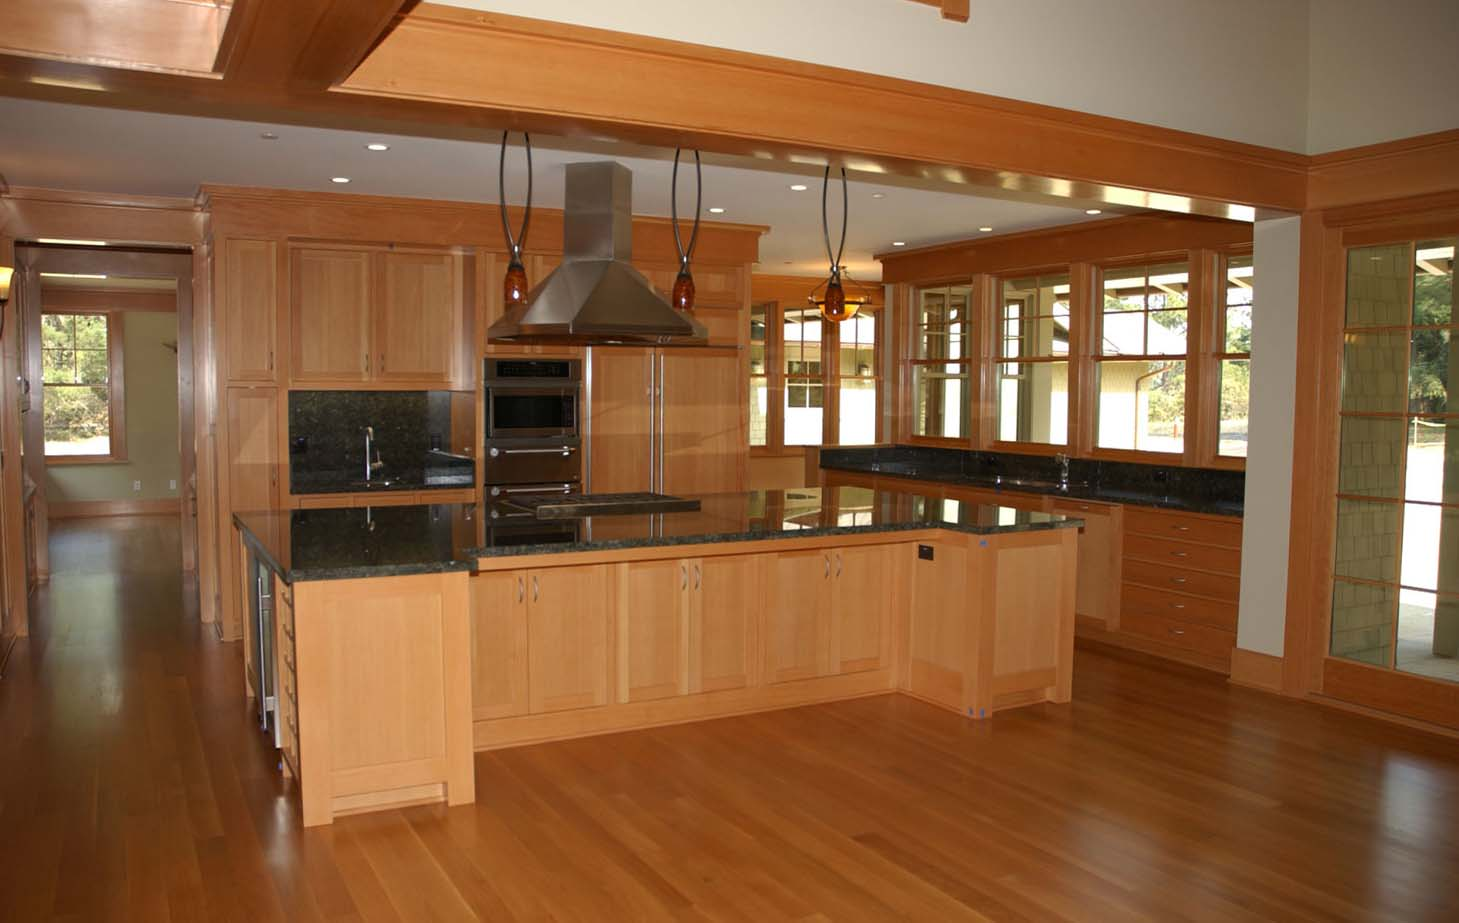 Selection of furniture for the kitchen in color and style 89